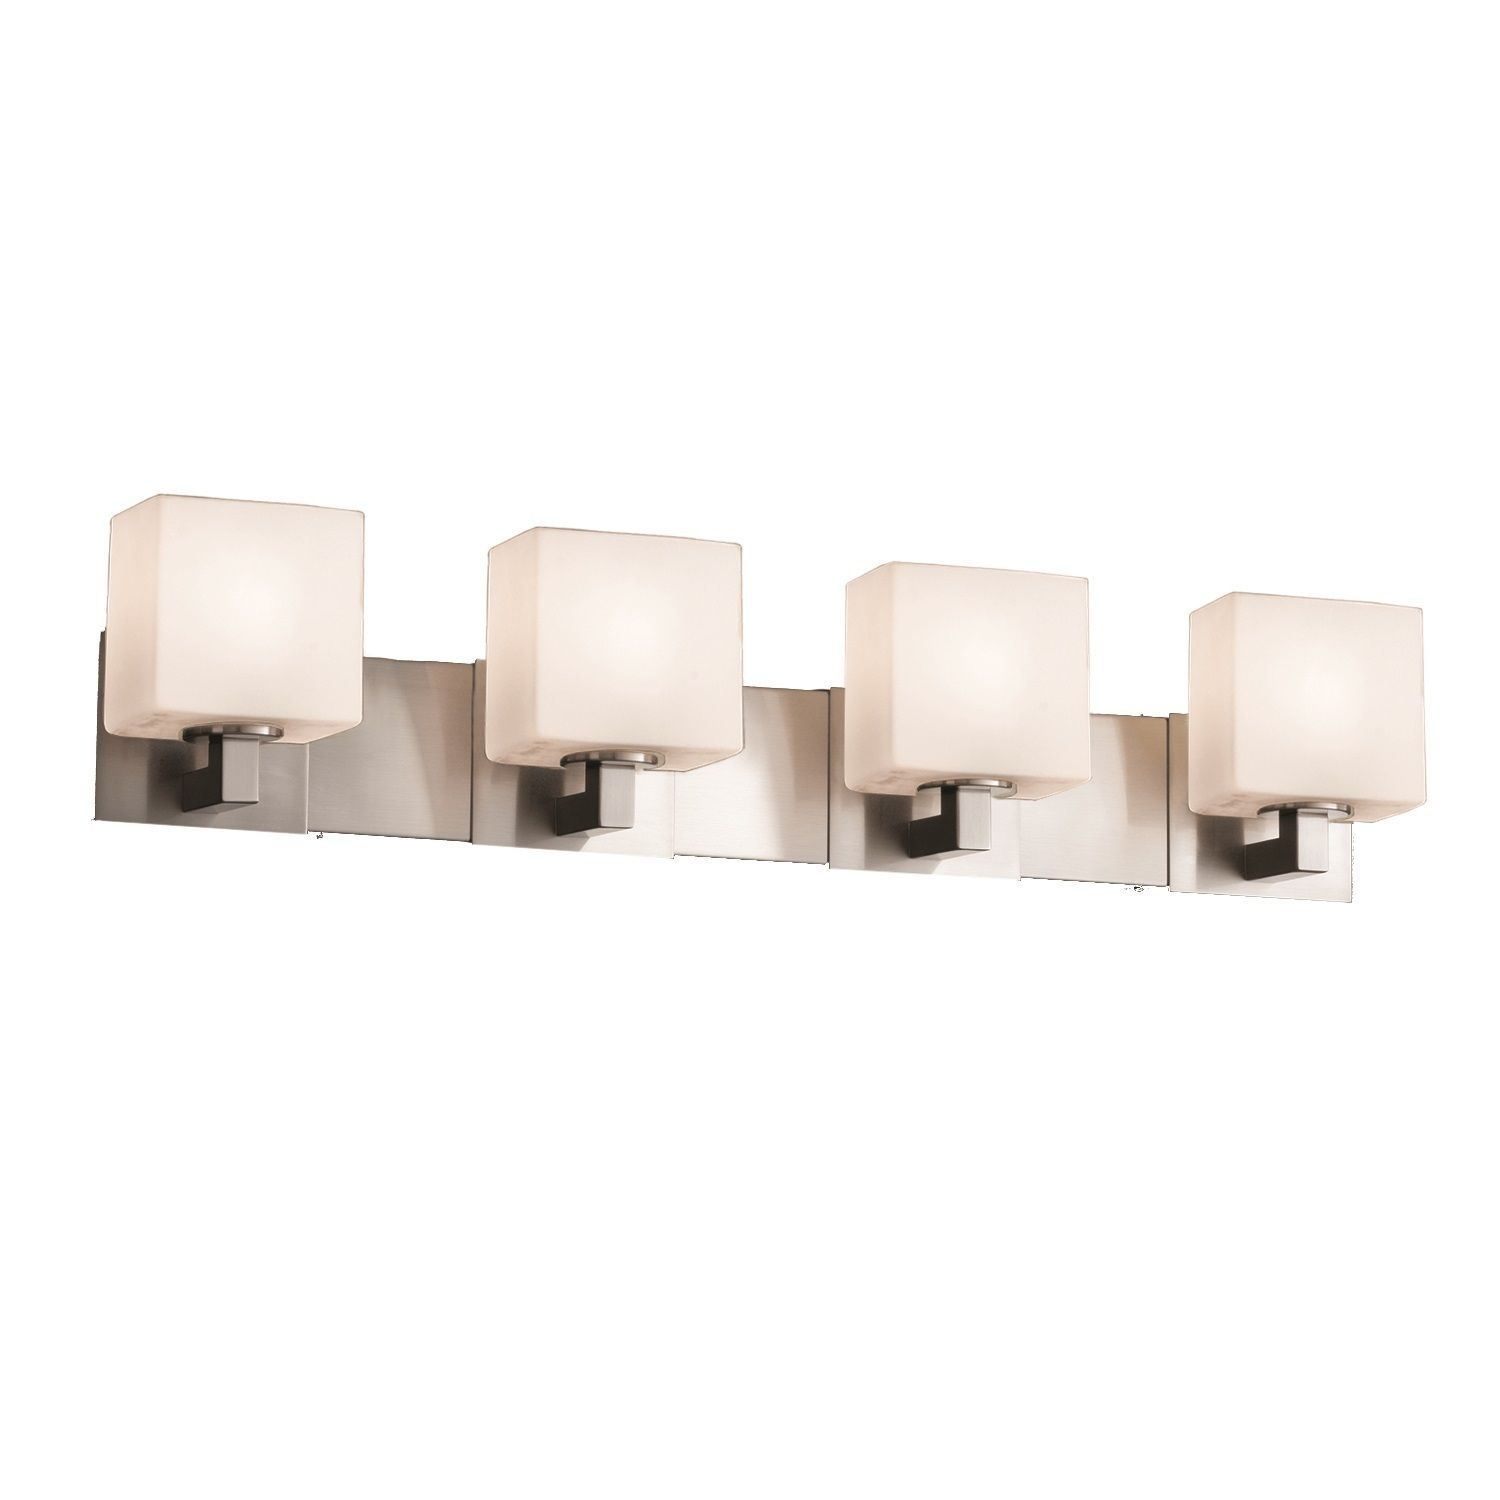 Justice Design Group Fusion Modular 4-light Nickel Bath Bar, Opal Shade